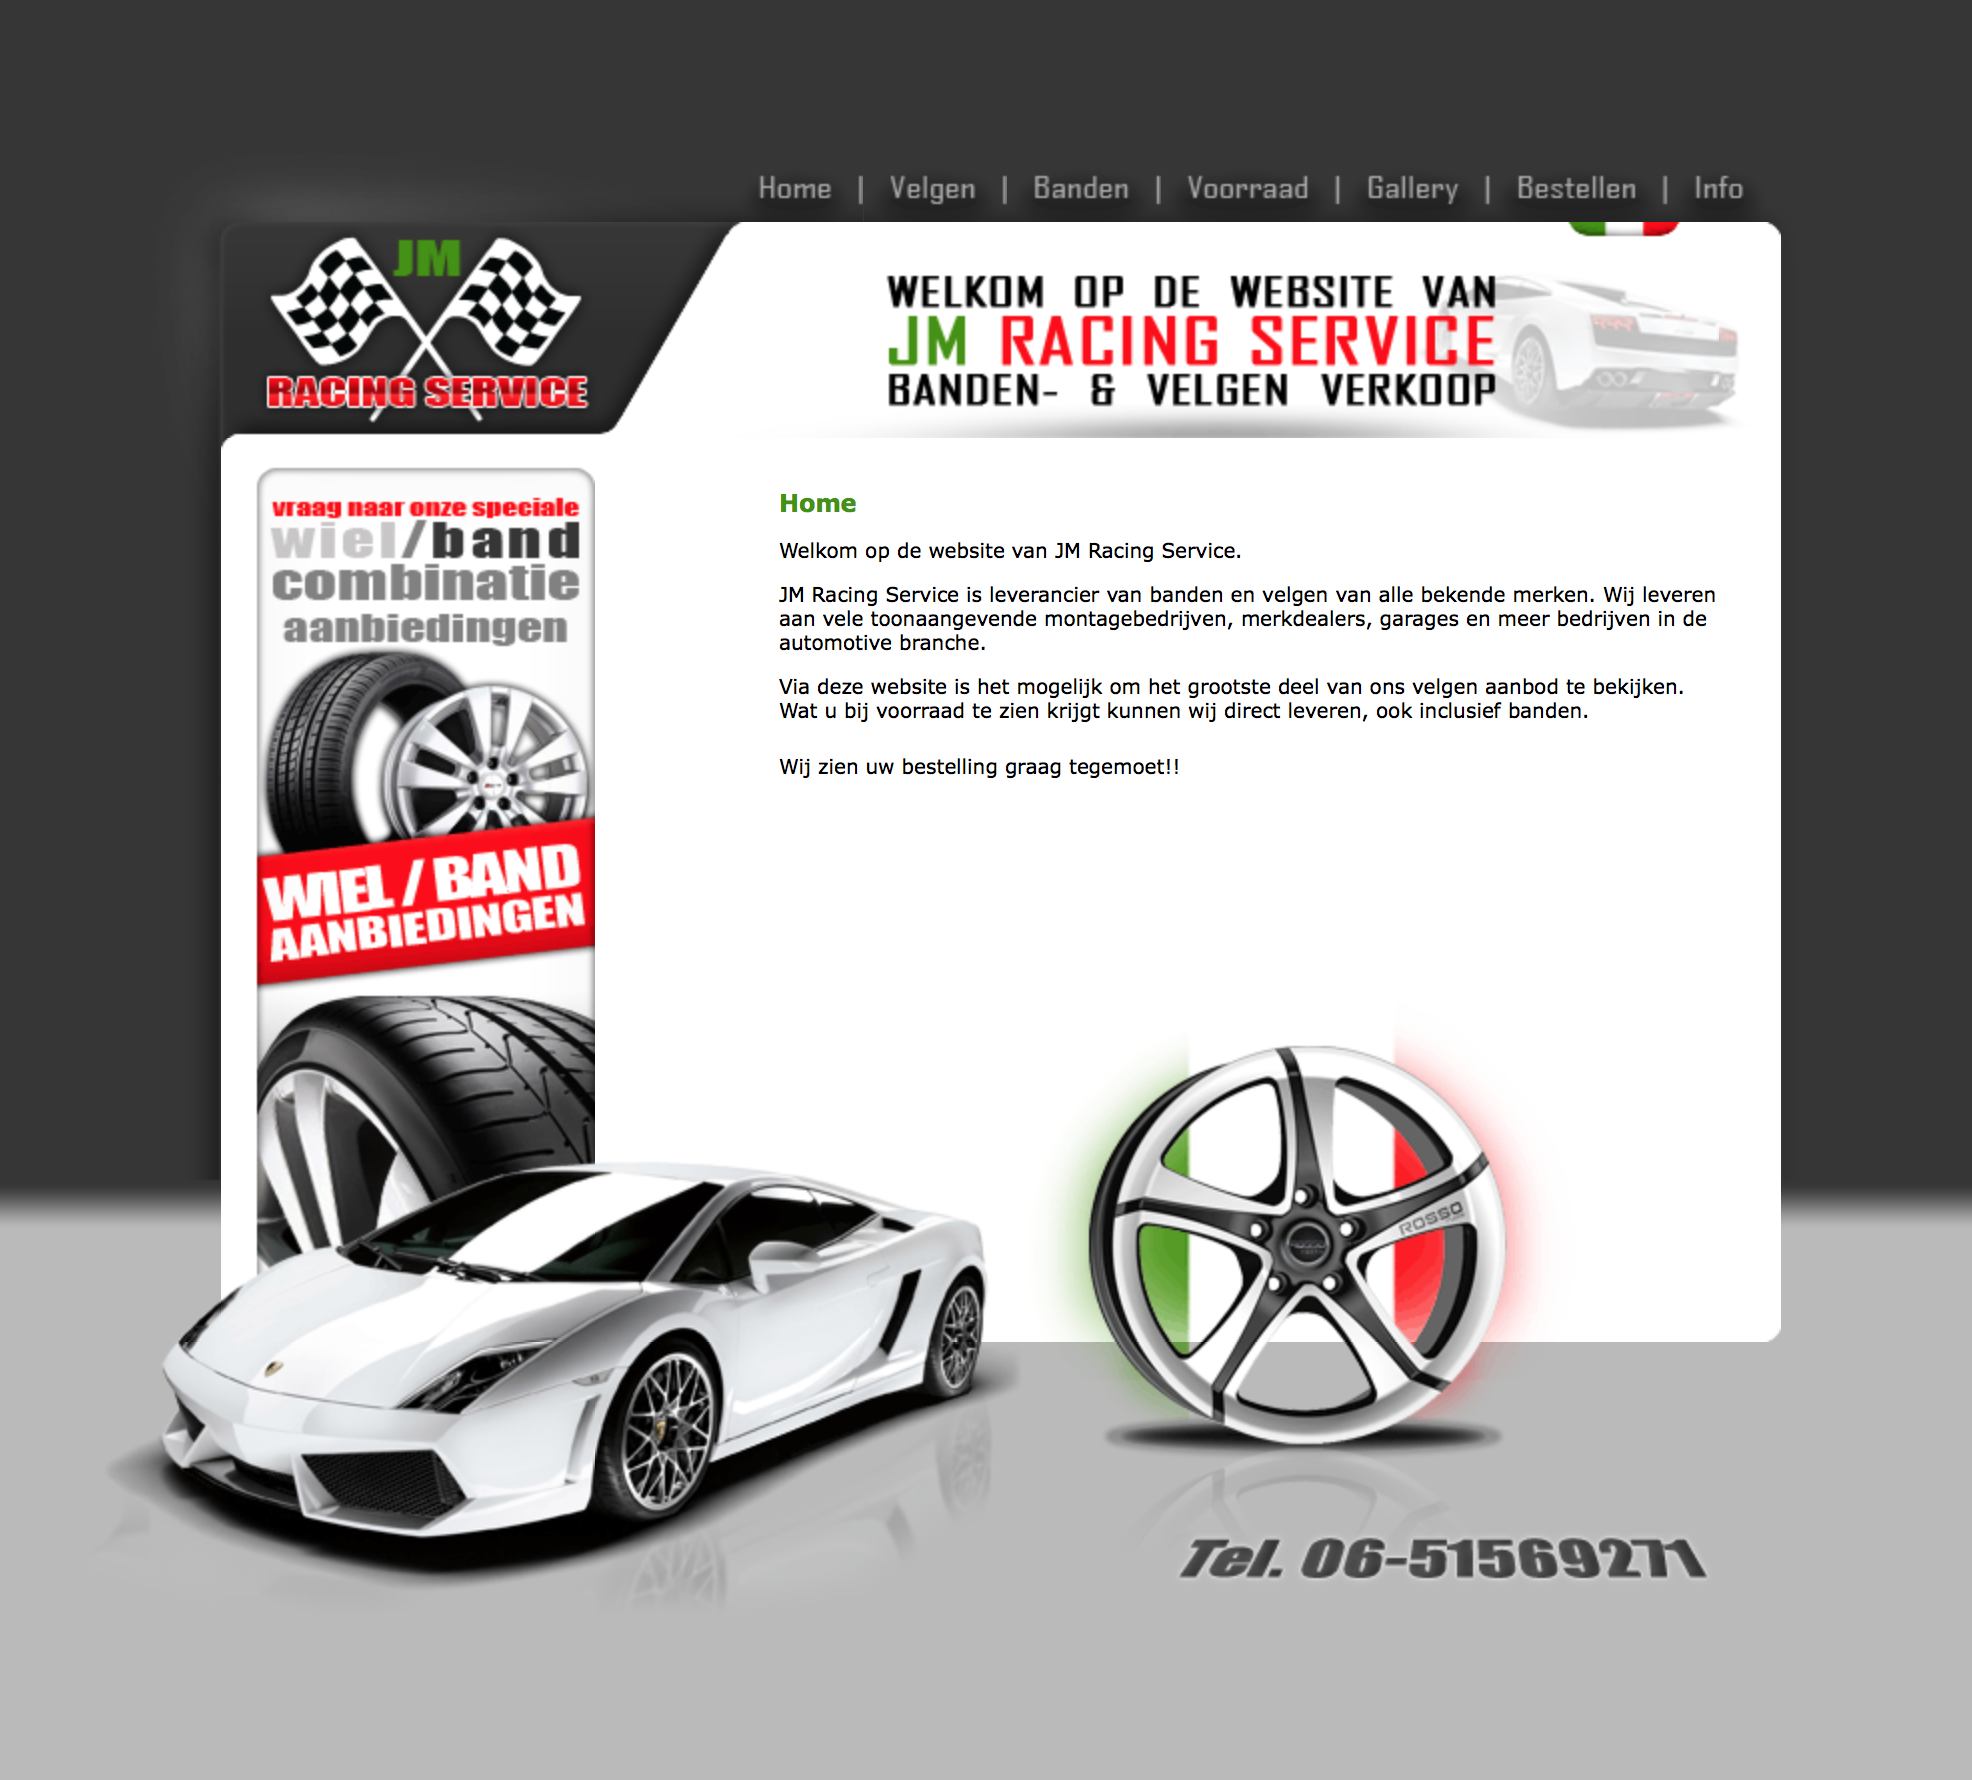 jmracing.nl website design